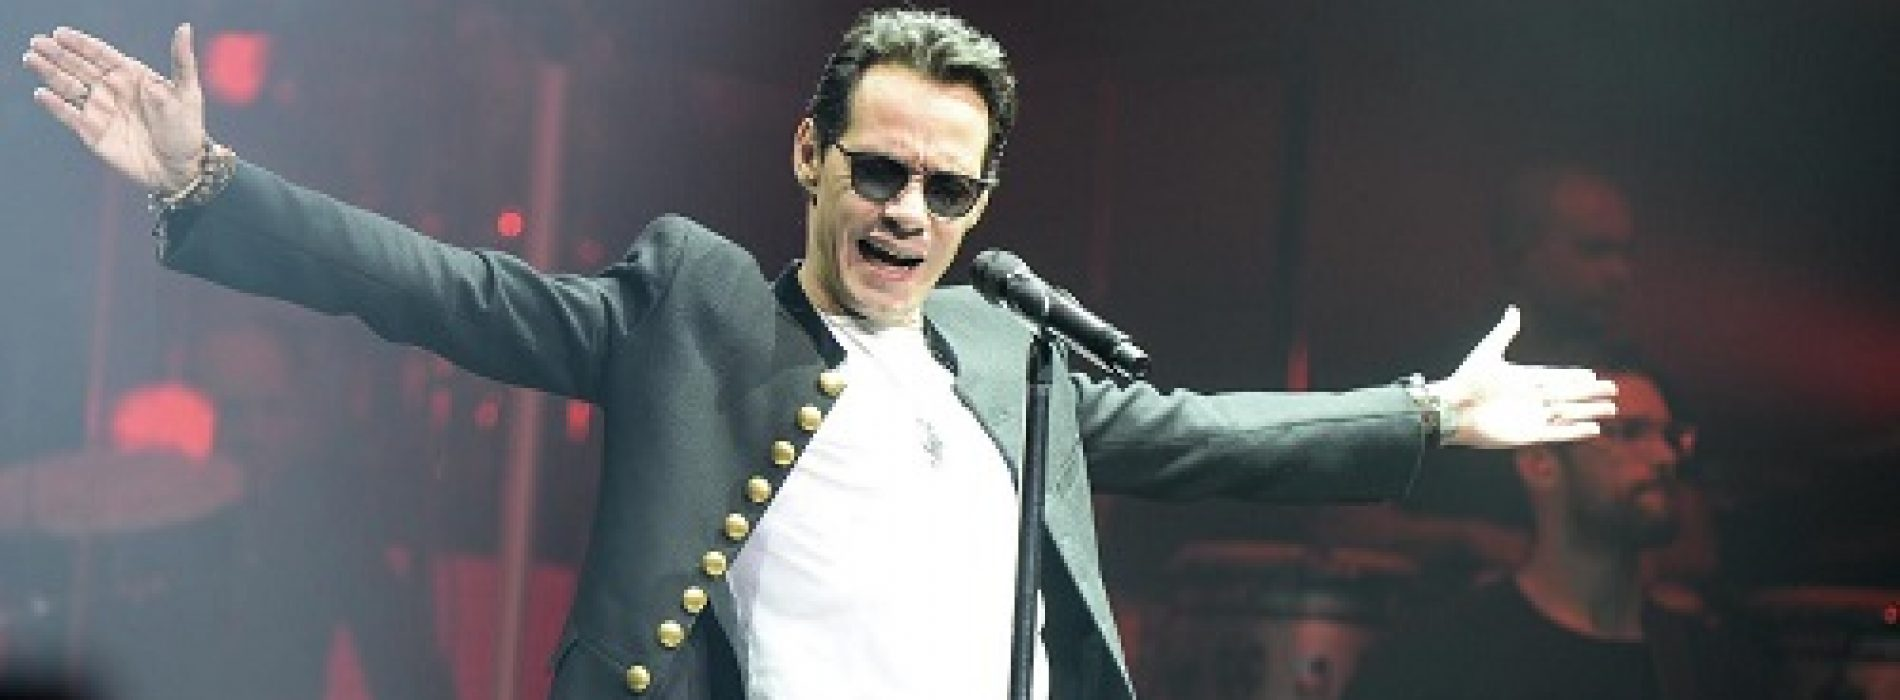 Doble de Marc Anthony se presenta este sábado en Copiapó